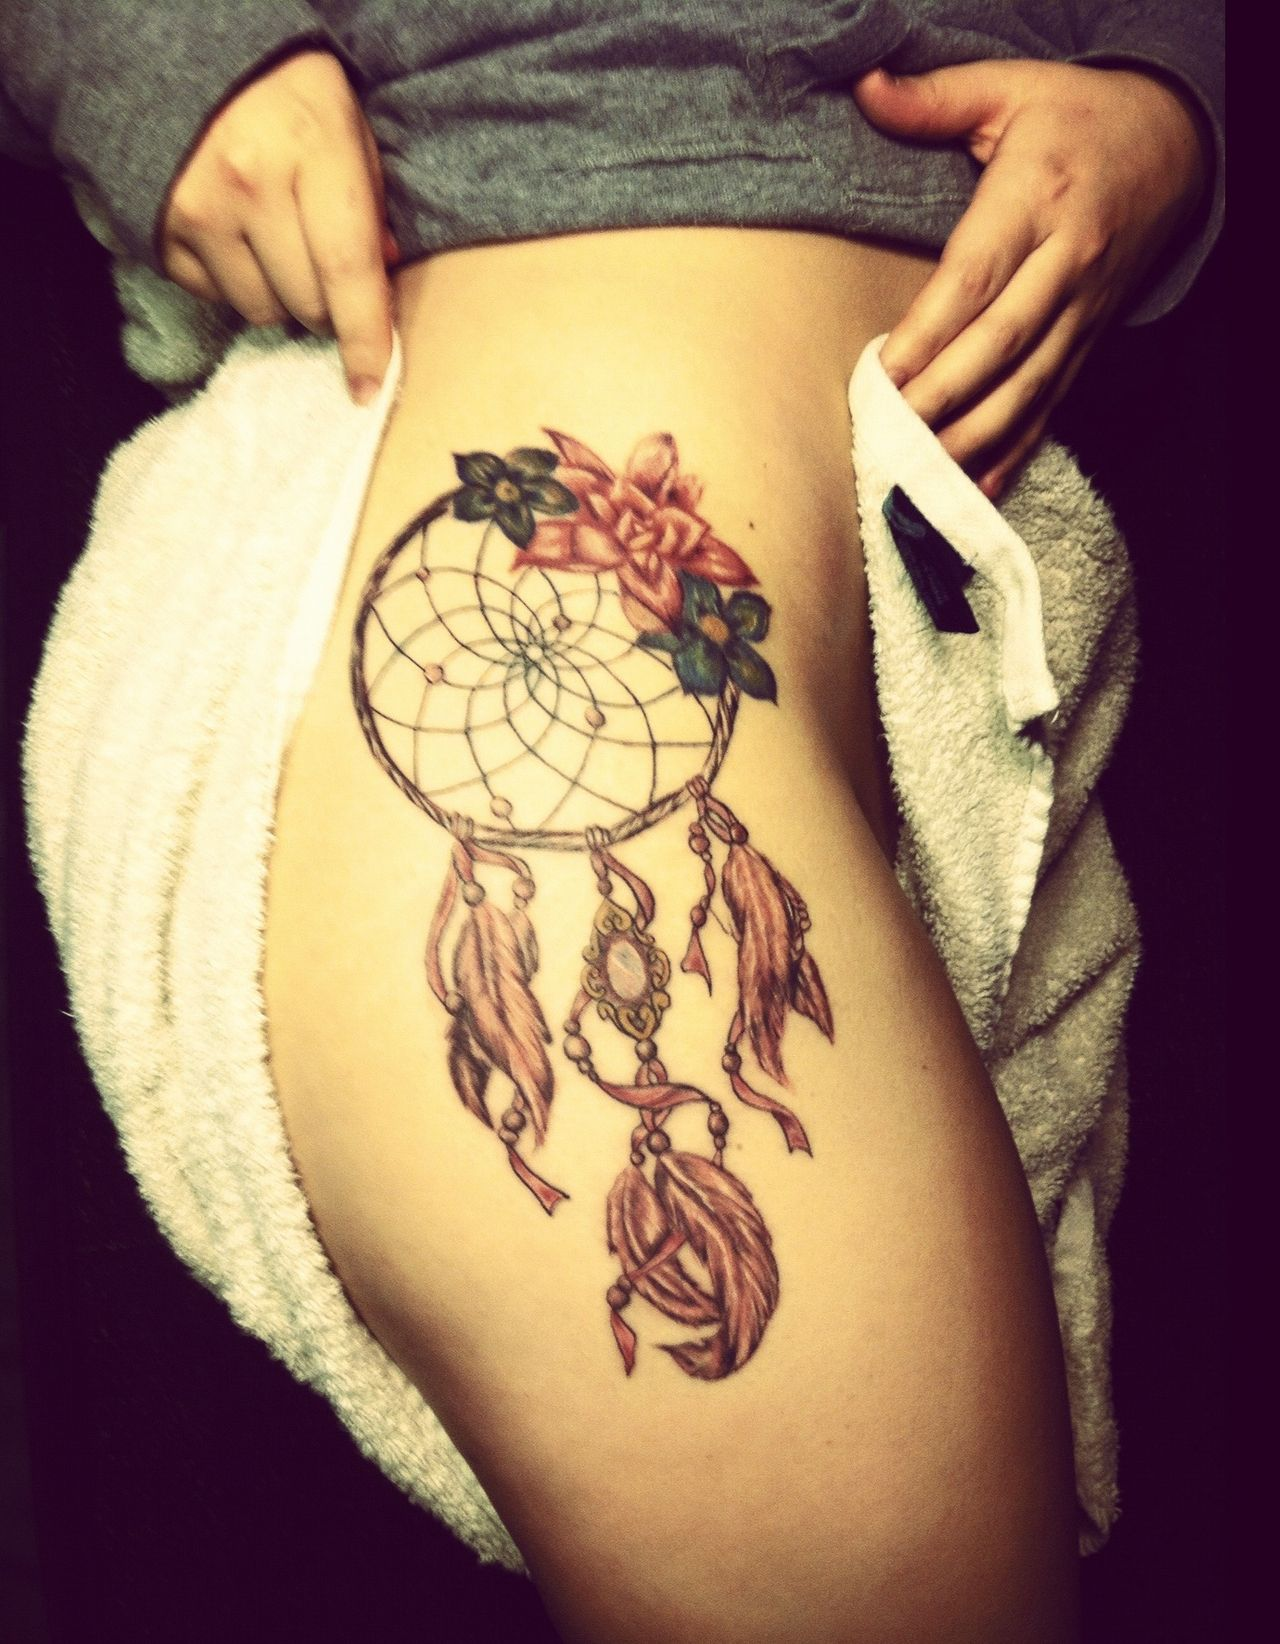 Find This Pin And More On Body Art Front Thigh Tattoo Dream Catcher